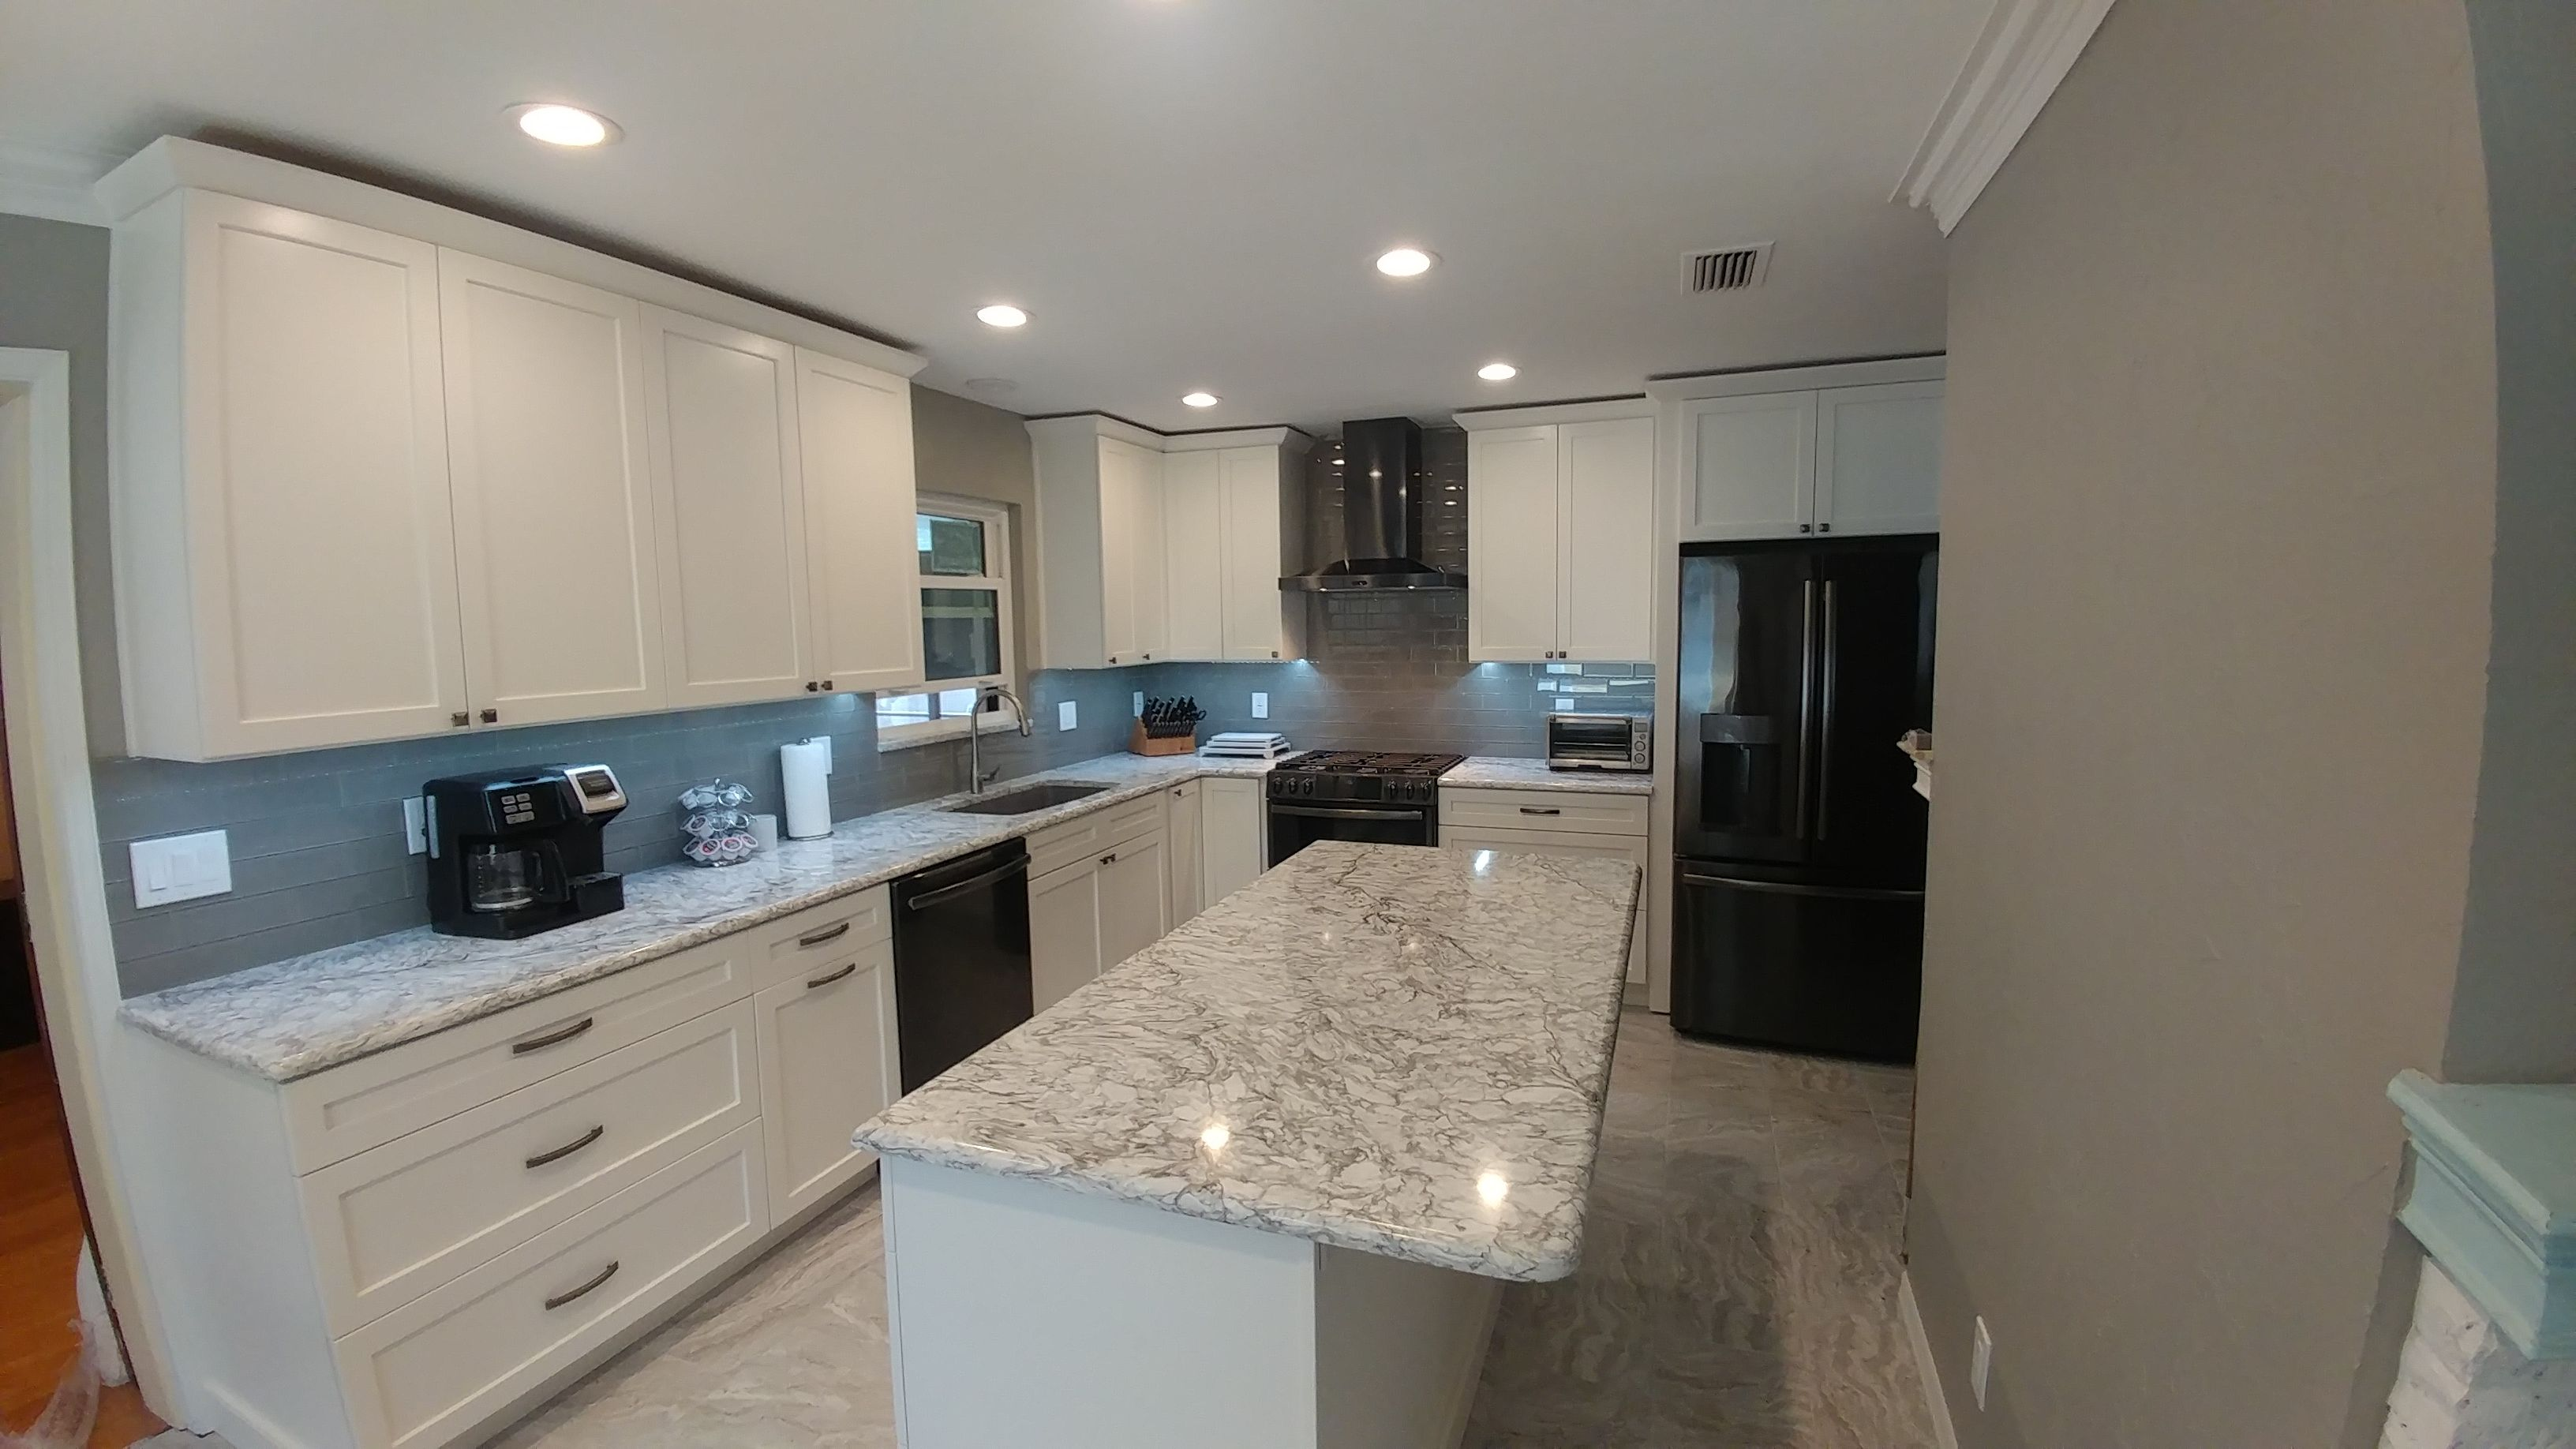 Bright White Shaker Cabinets By Eudora American Made From Alabama New Light Subtle Tile Floors G White Shaker Cabinets Glass Subway Tile Backsplash Cabinet